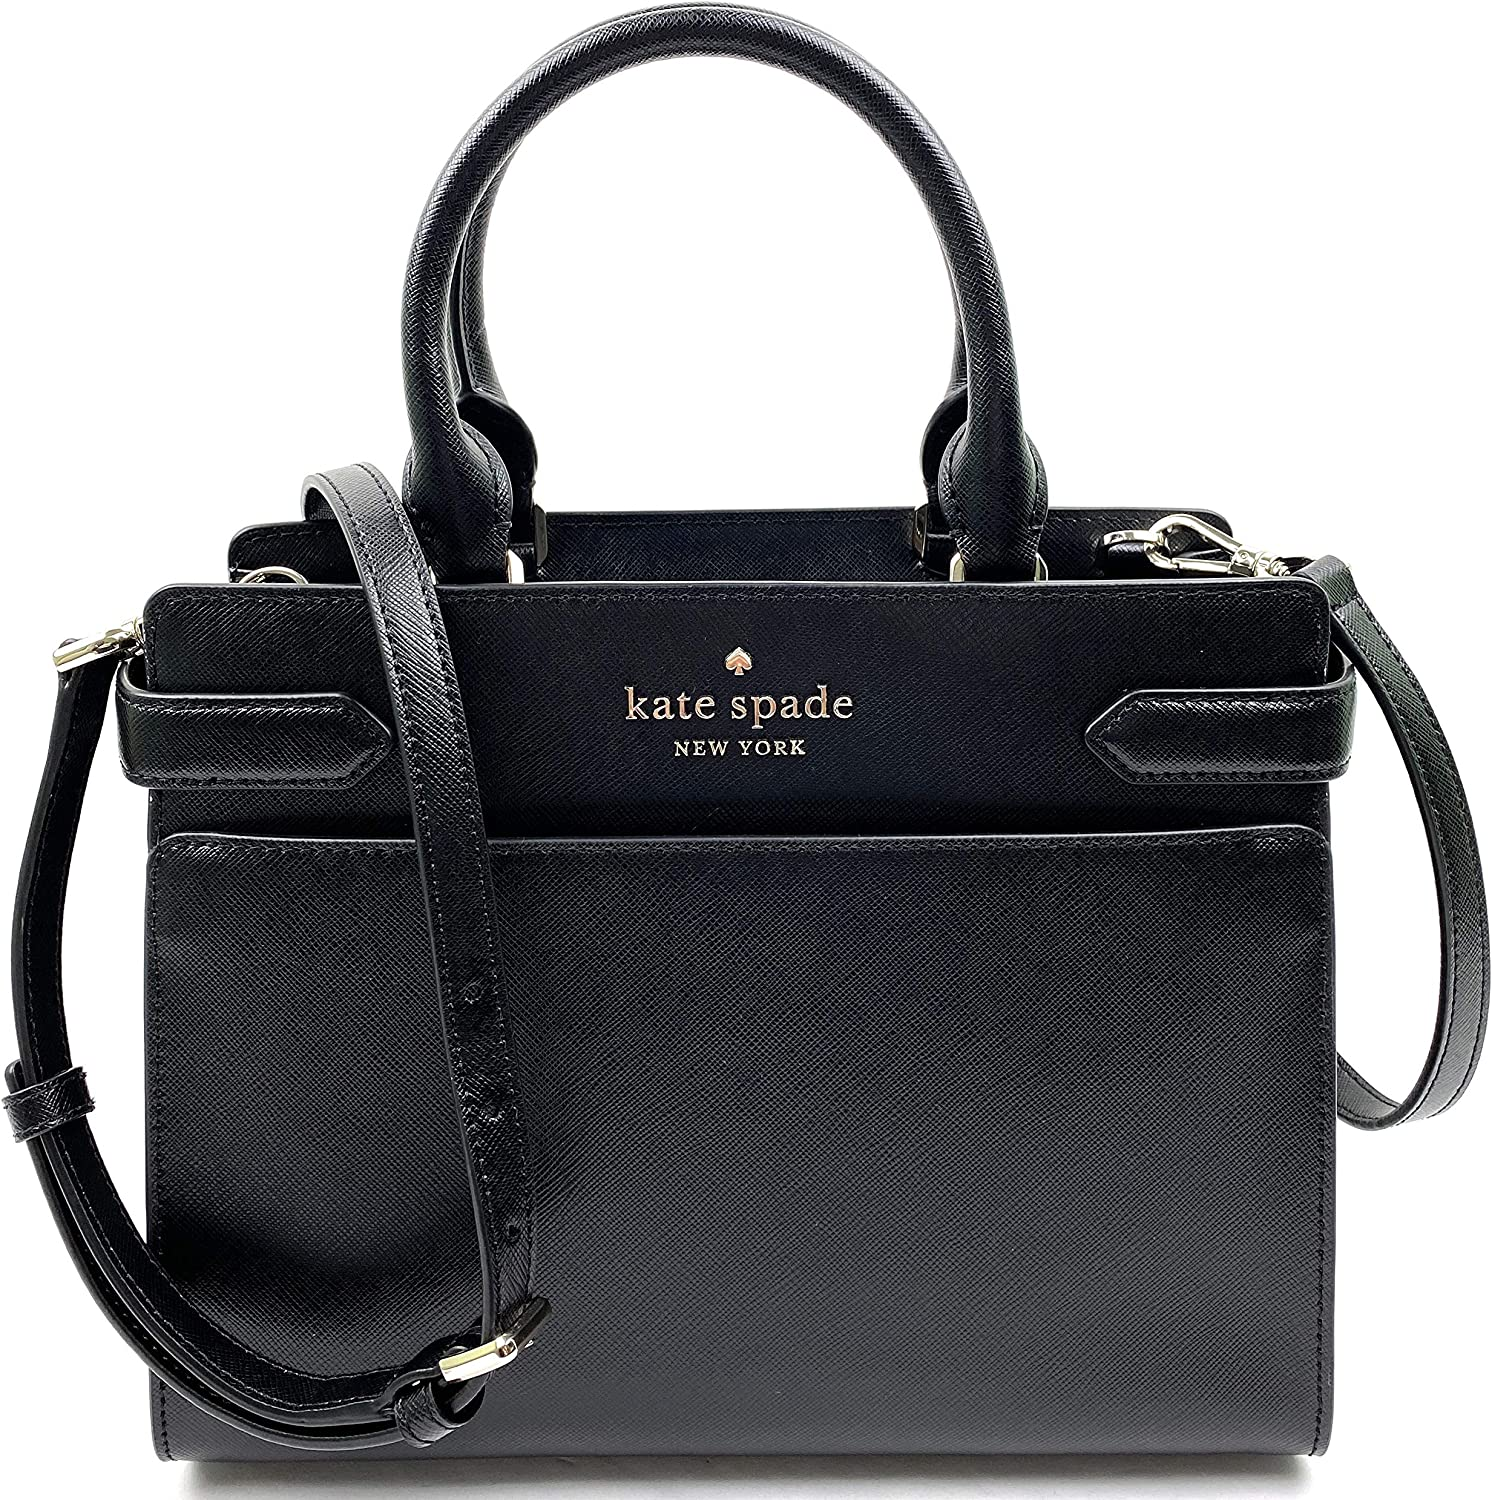 Kate Spade New York Staci Medium Satchel Purse